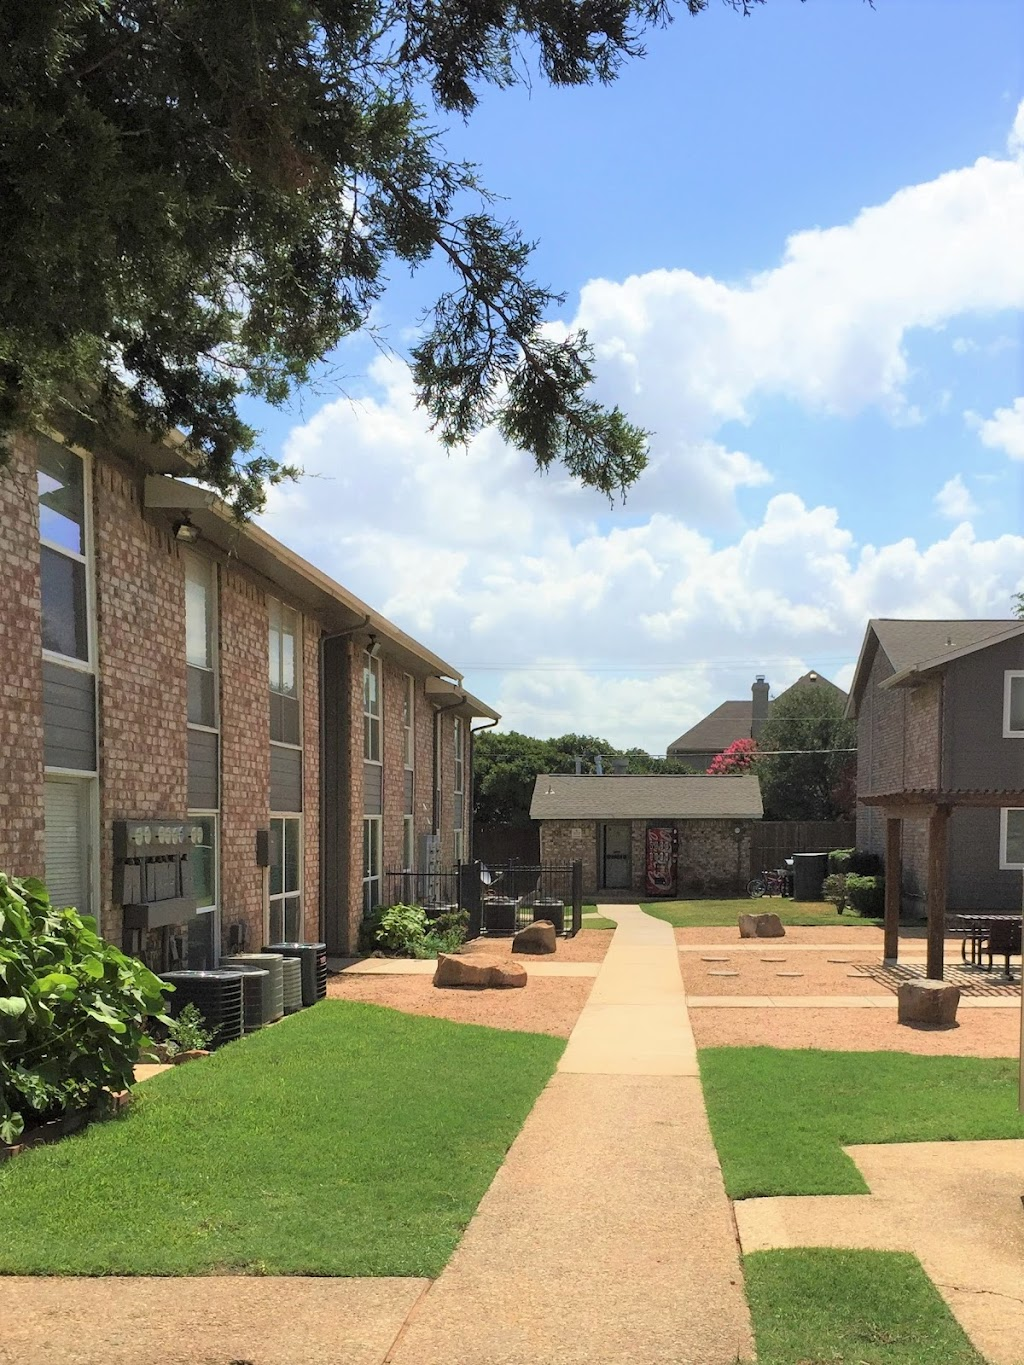 Ridge Crest Apartments - real estate agency  | Photo 6 of 10 | Address: 2805 Mustang Dr, Grapevine, TX 76051, USA | Phone: (817) 714-3043